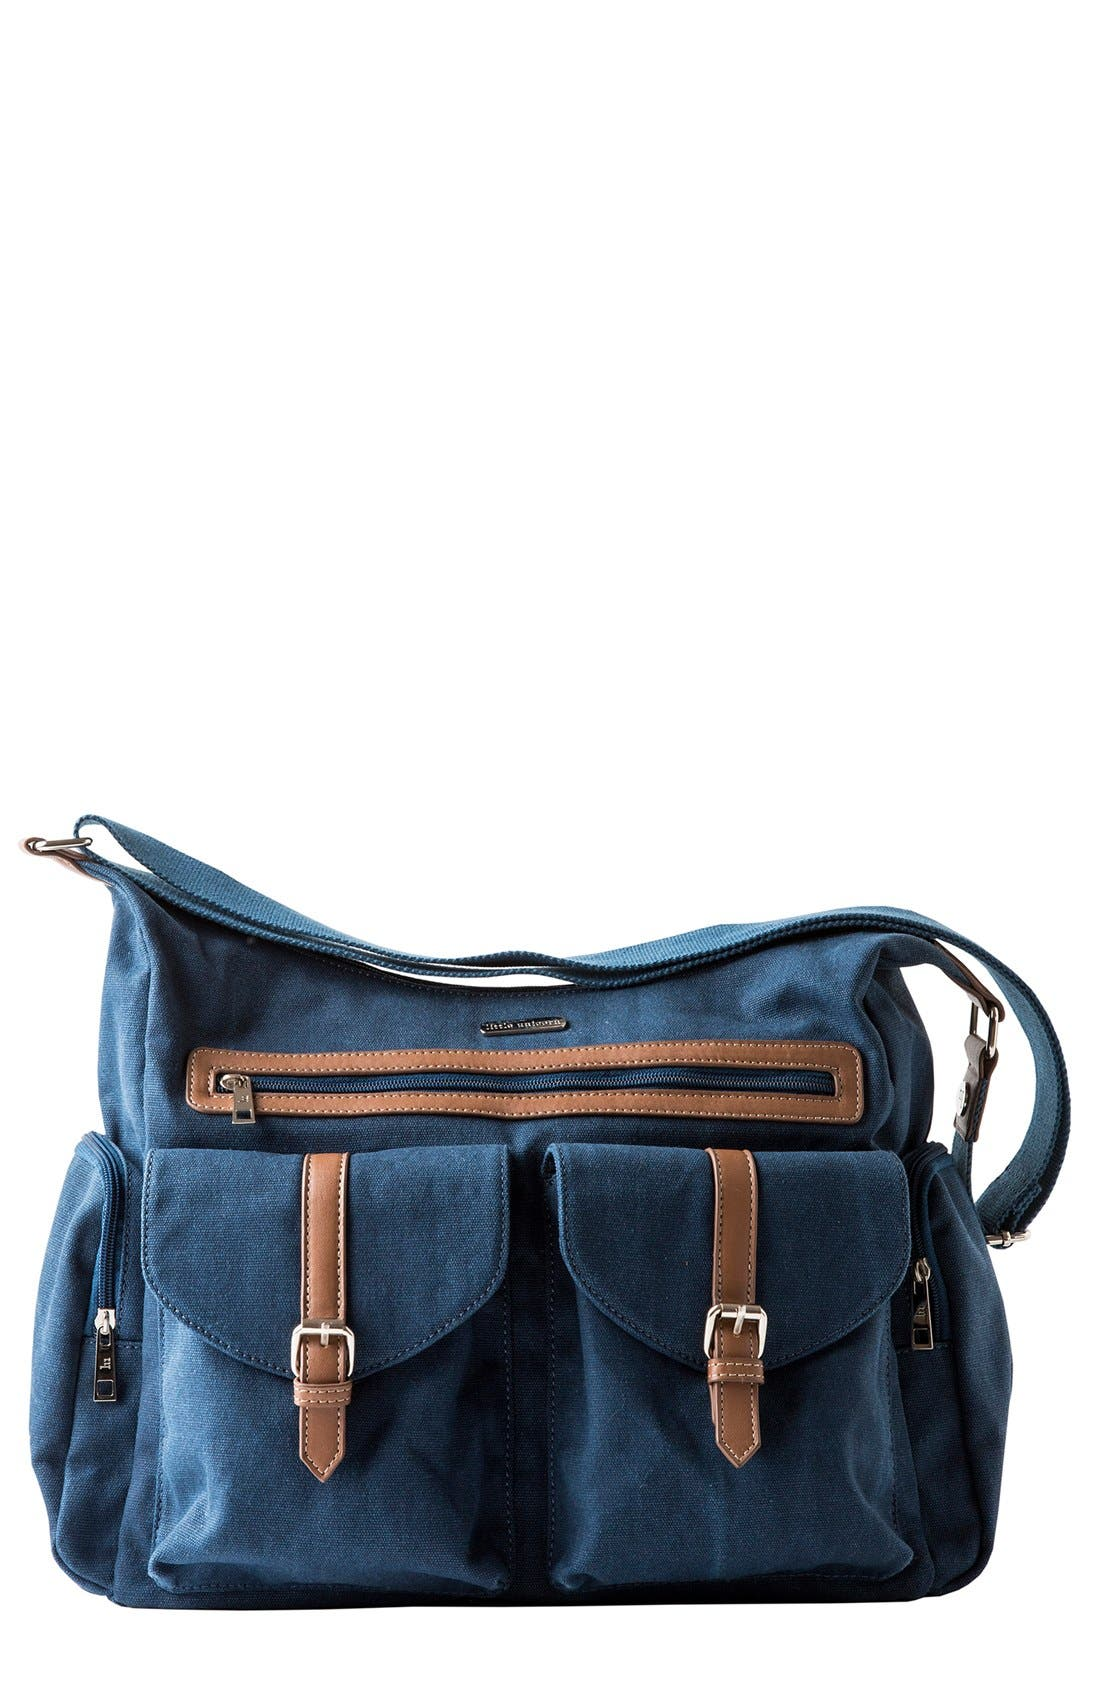 LITTLE UNICORN 'Rambler' Satchel